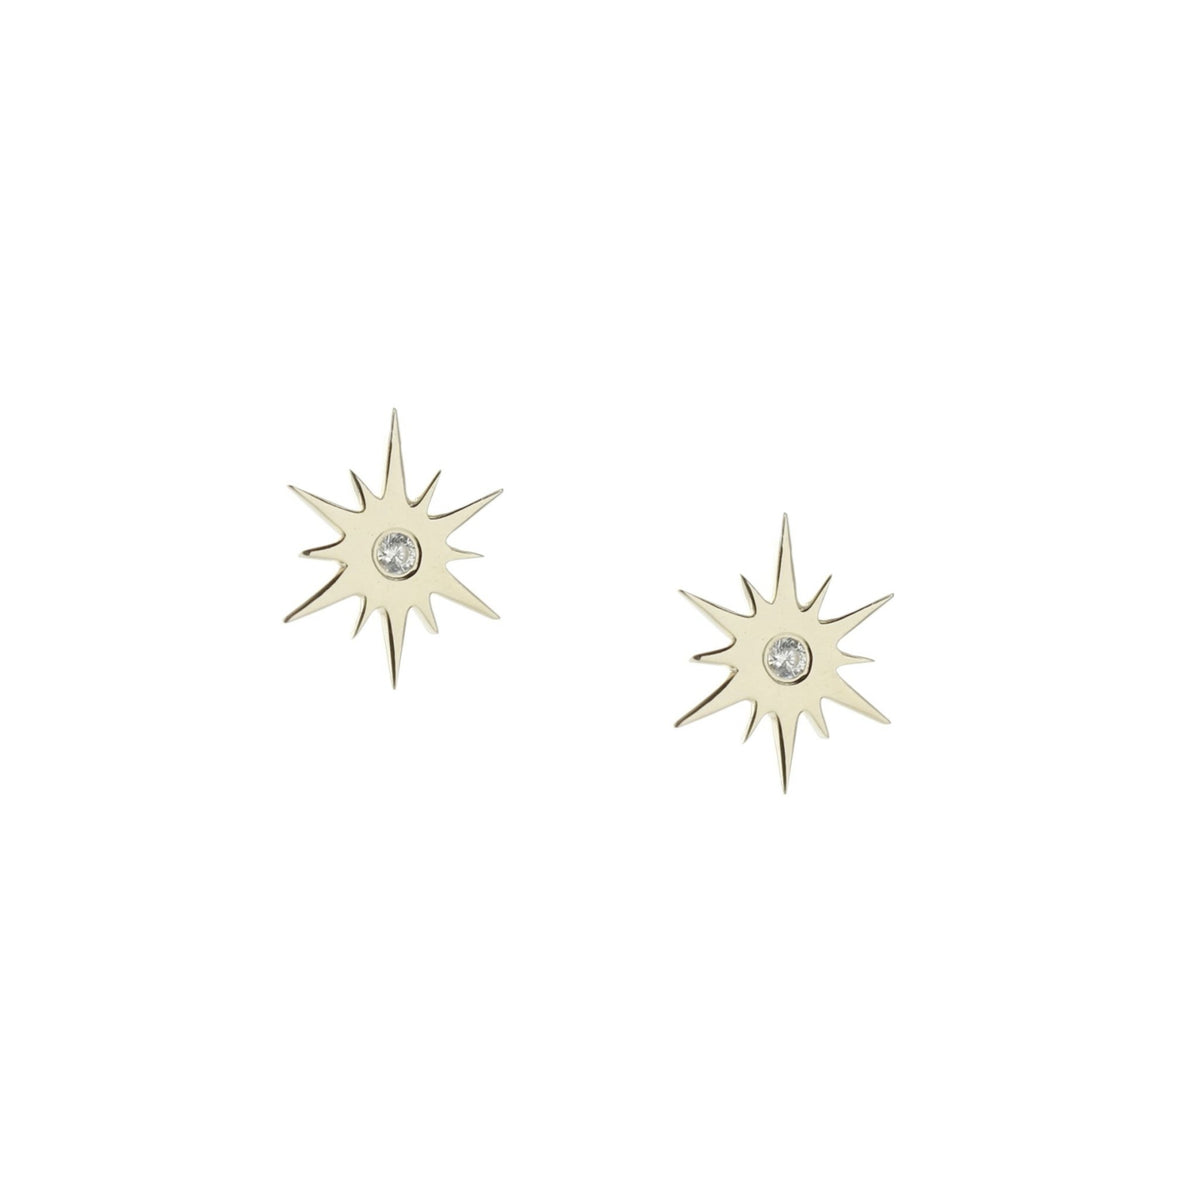 TINY BELIEVE STELLAR STUDS - CUBIC ZIRCONIA, & SILVER - SO PRETTY CARA COTTER